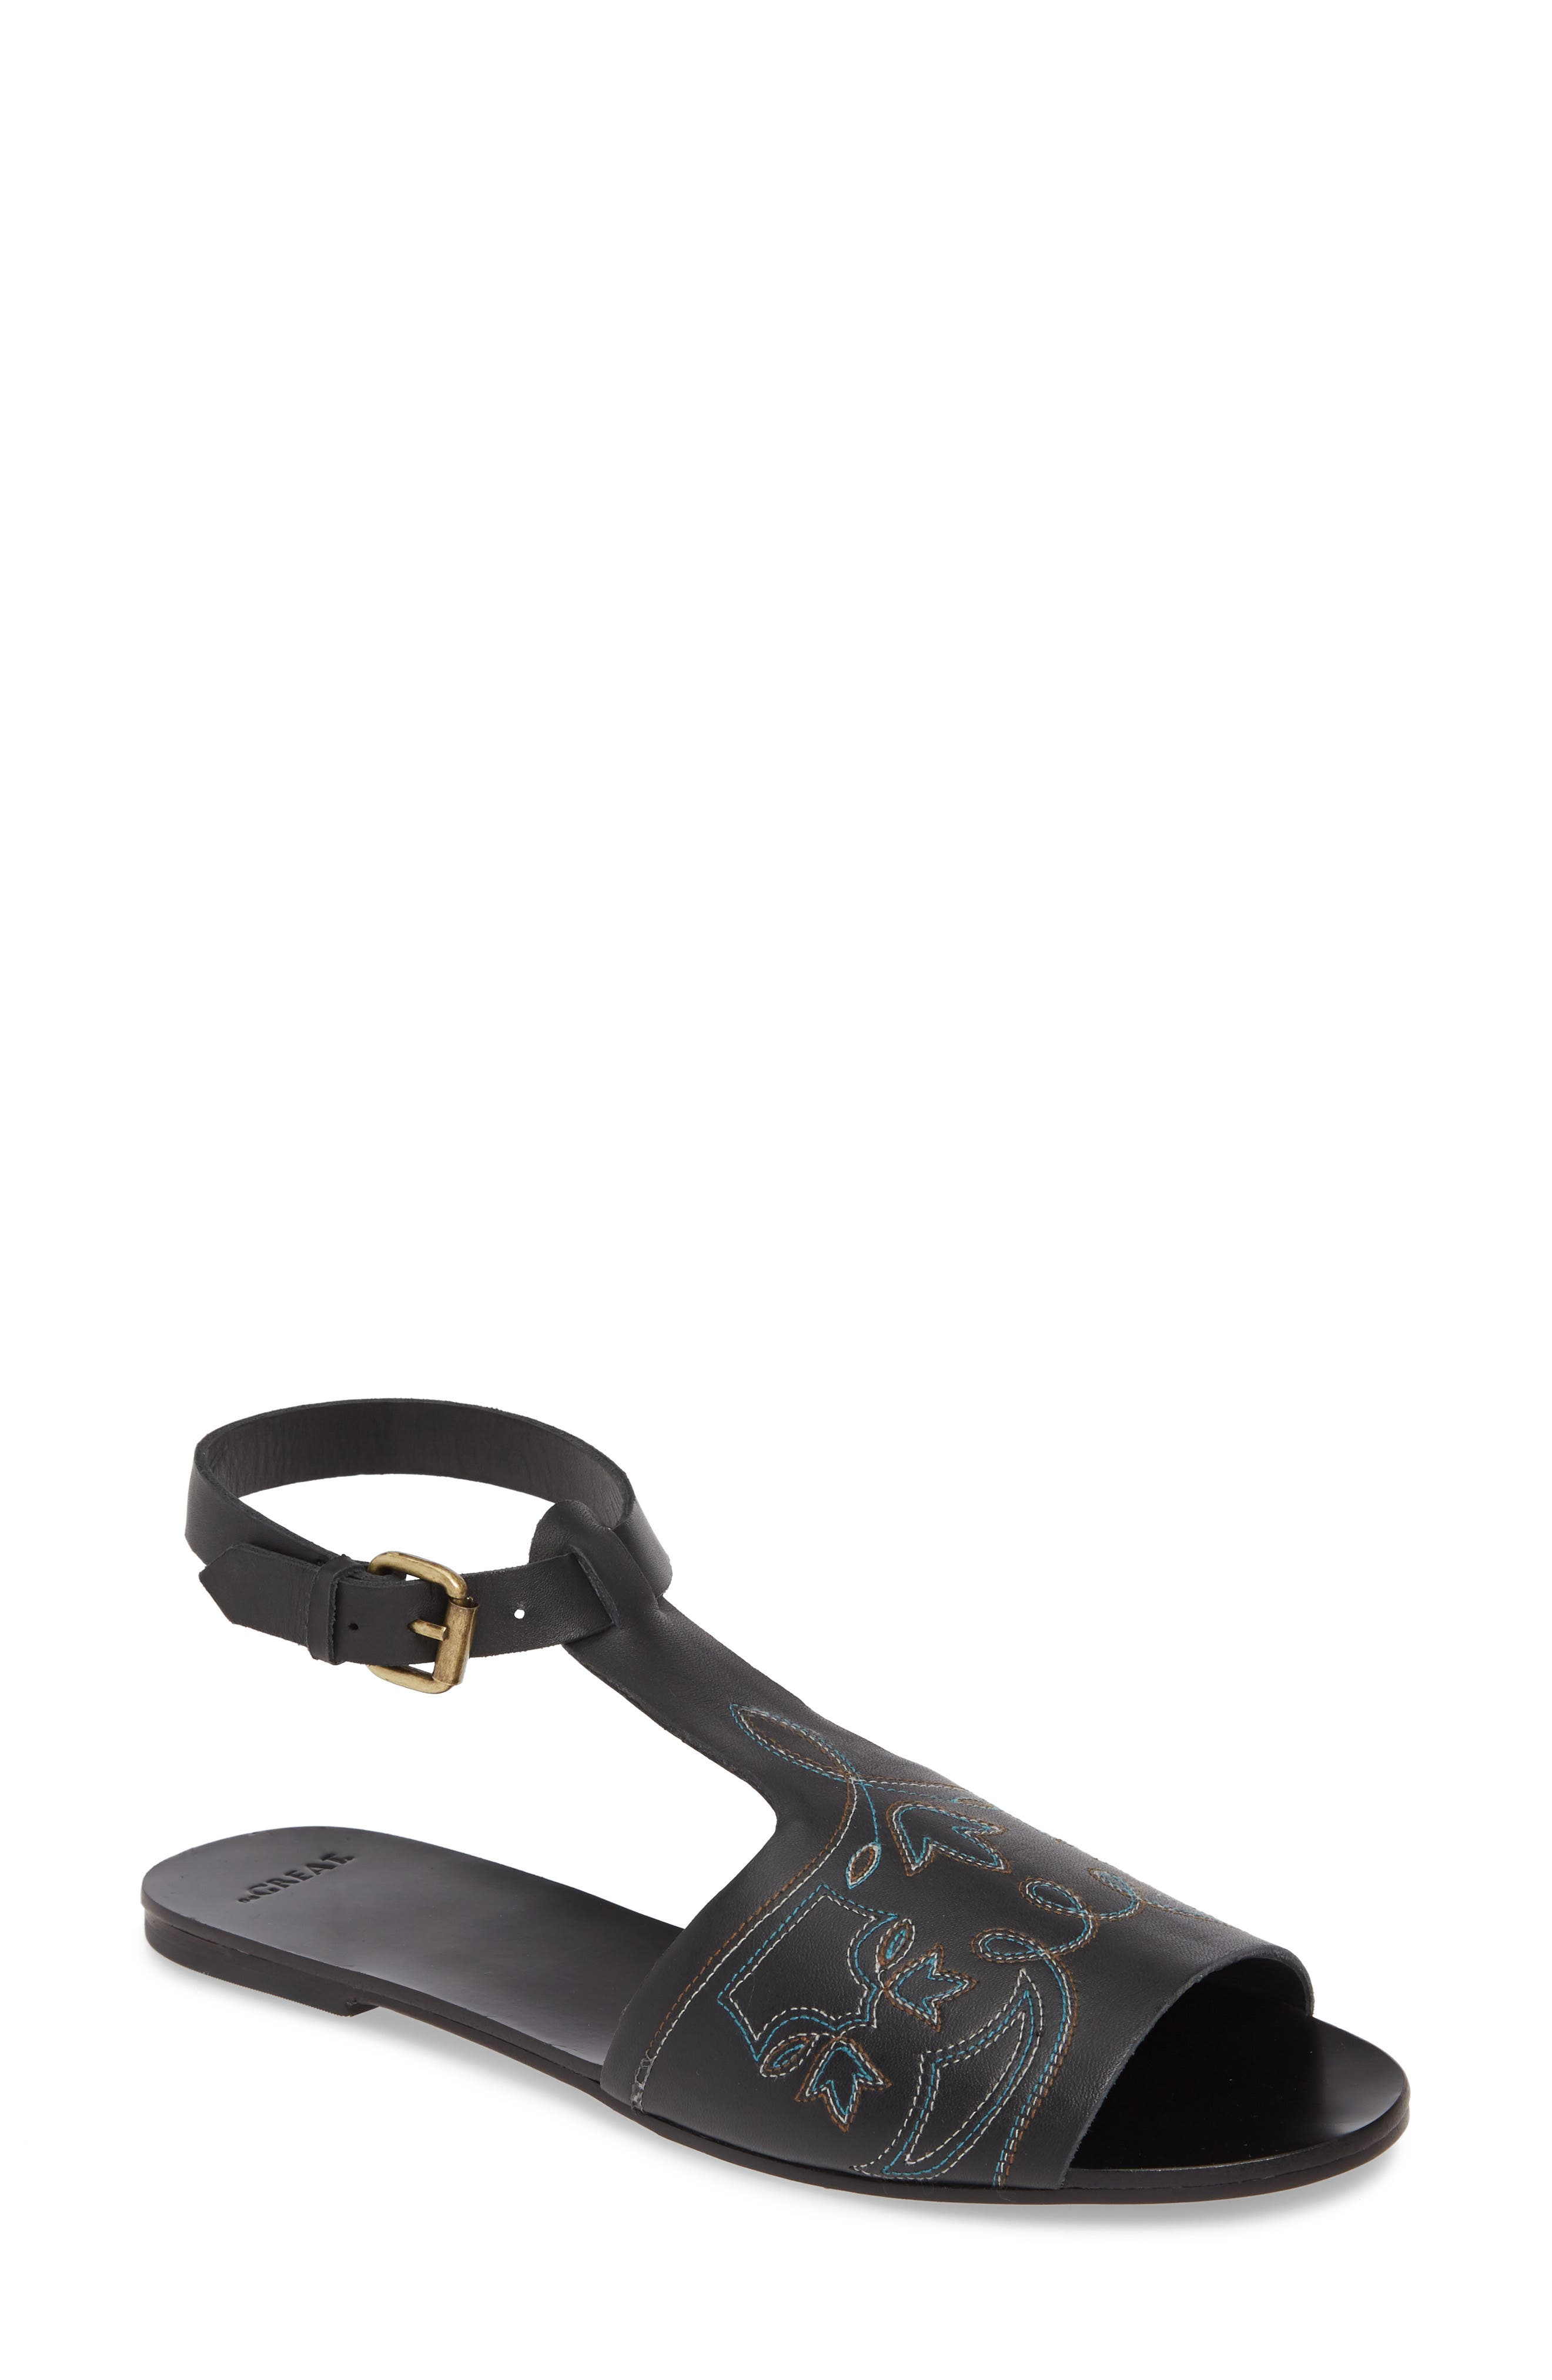 The Great. The Western Sandal, Black